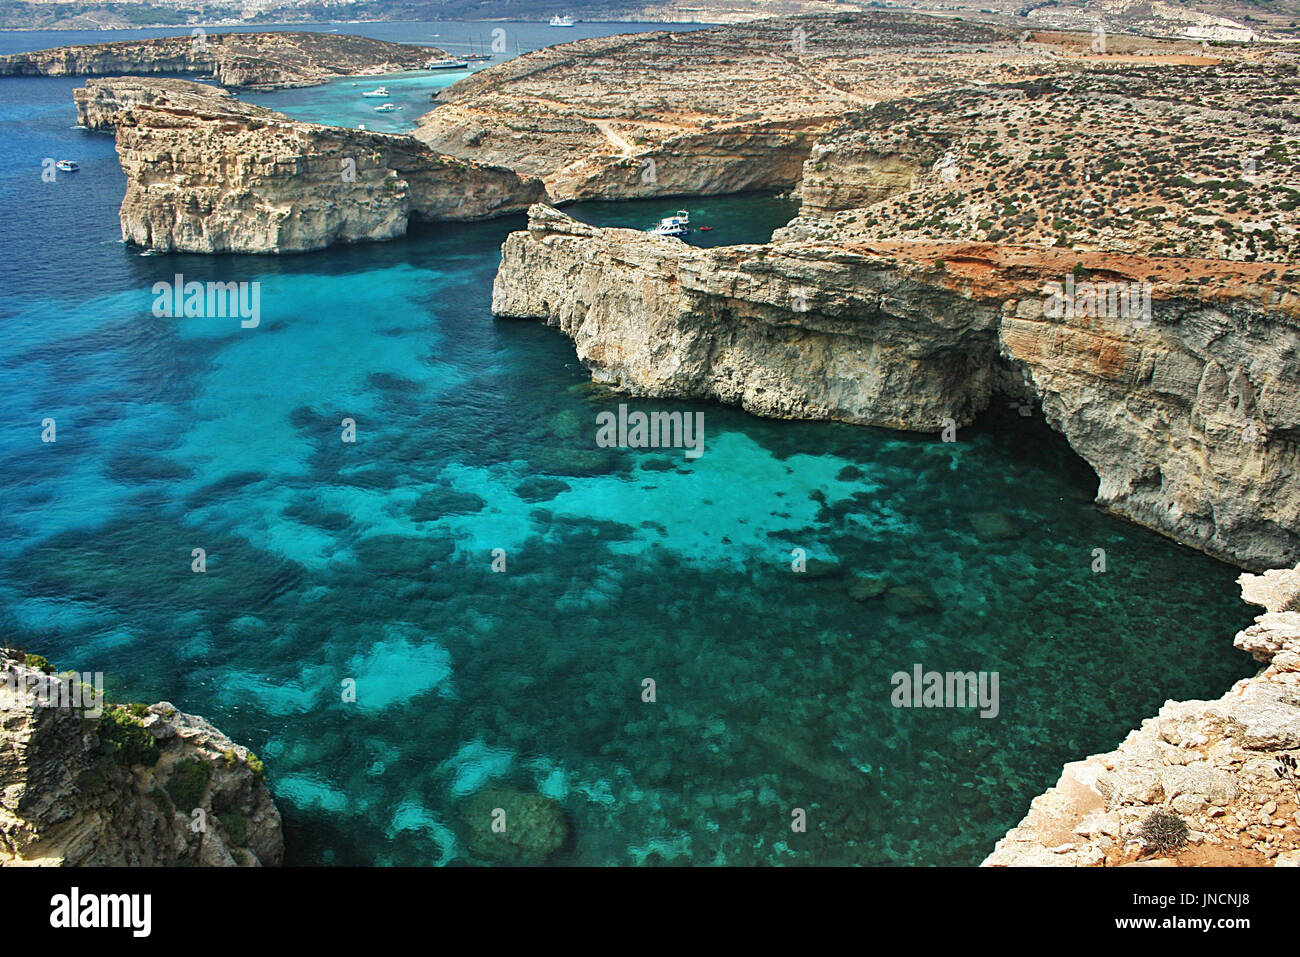 Looking towards Gozo from cliffs on the island of Comino, Malta - Stock Image